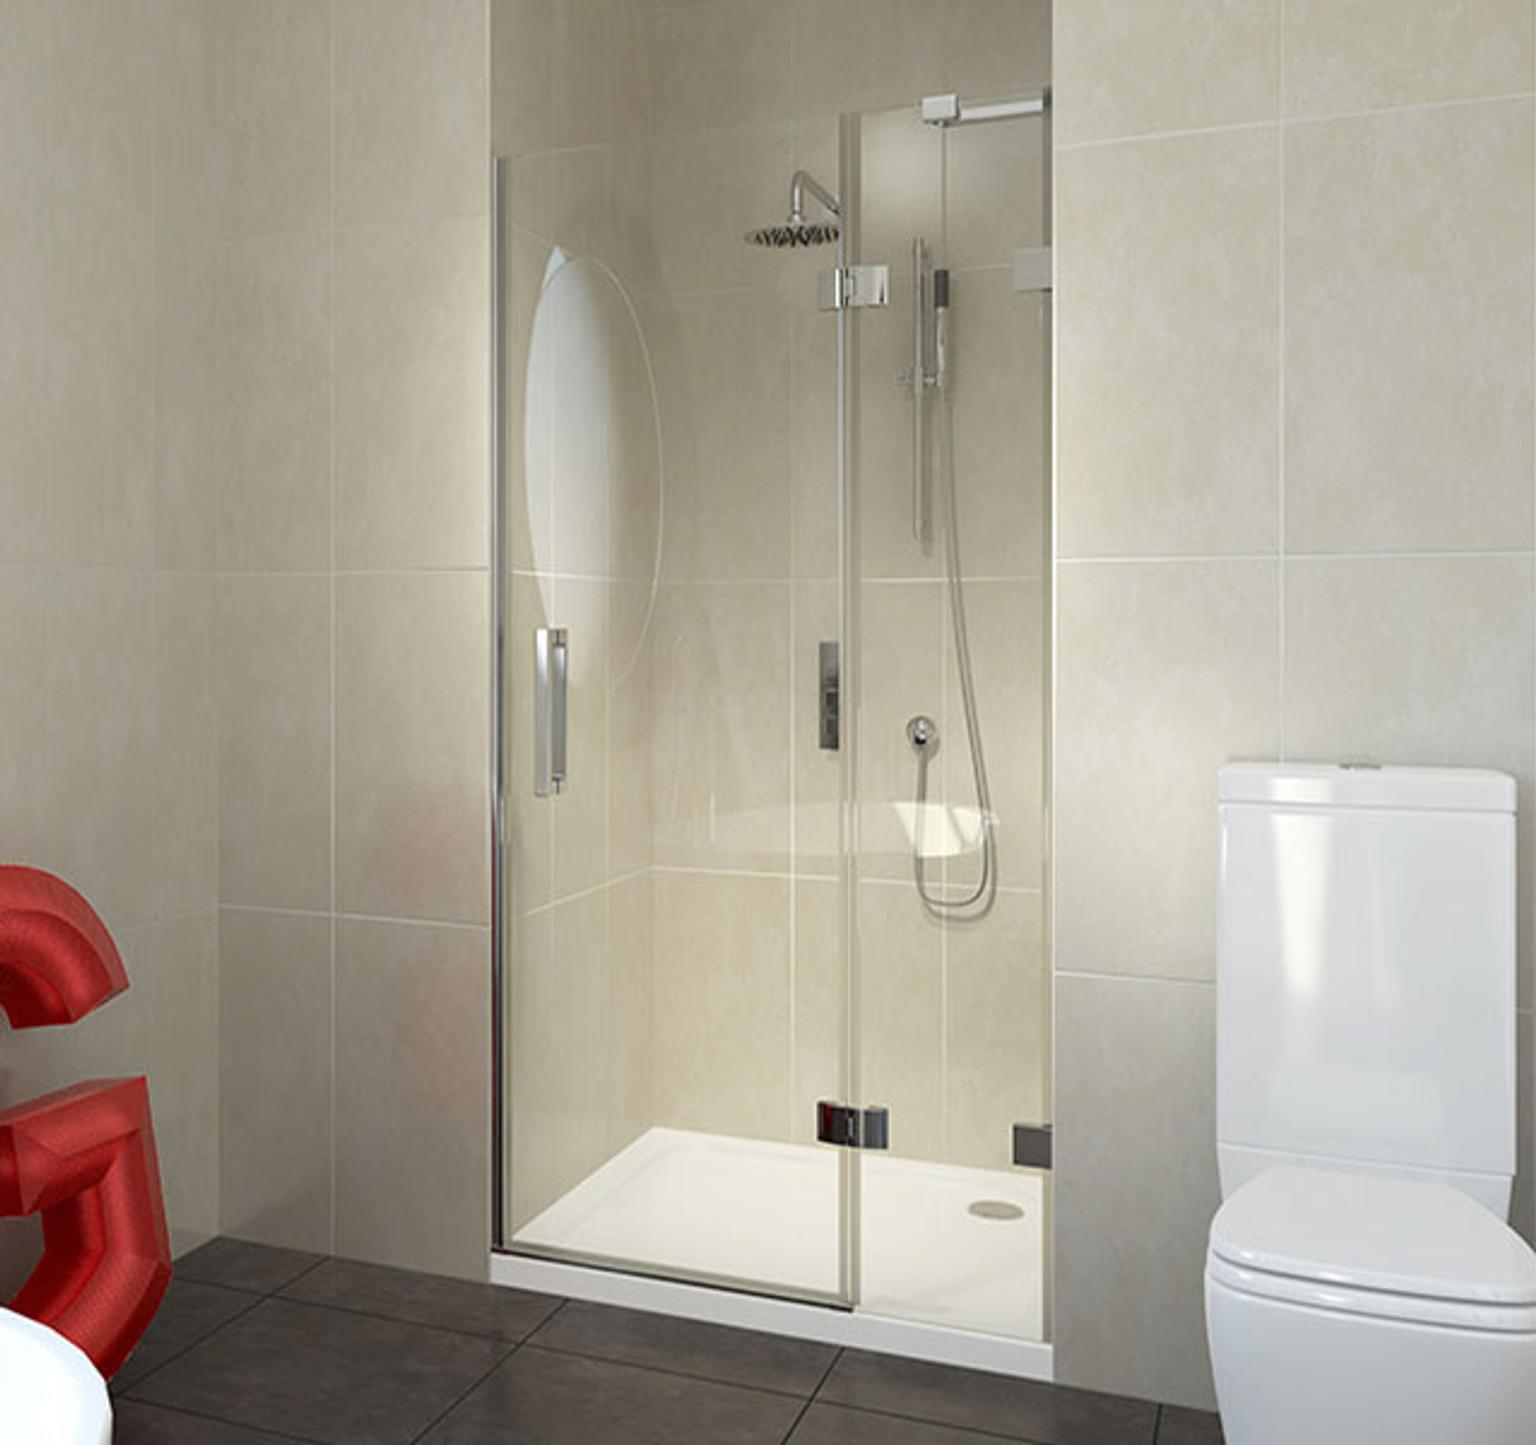 Balat Frameless Hinged Shower Door In Wv14 Sandwell For 163